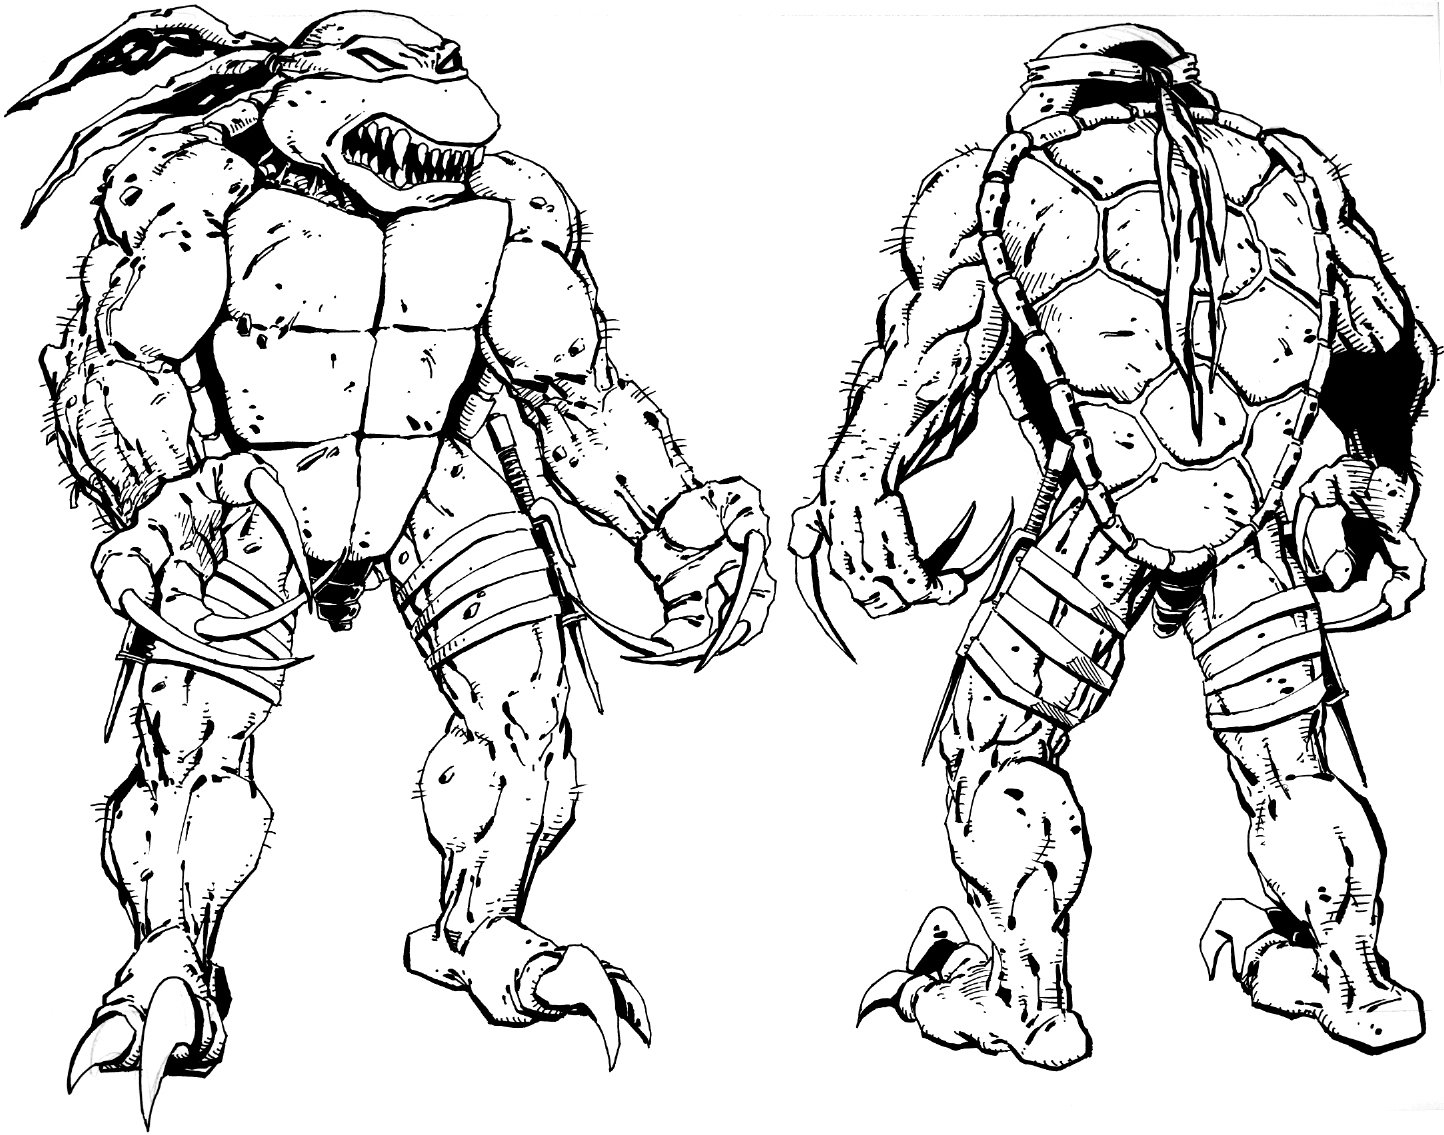 Ninja Turtles Movie Coloring Pages Collection 3j - Free Download